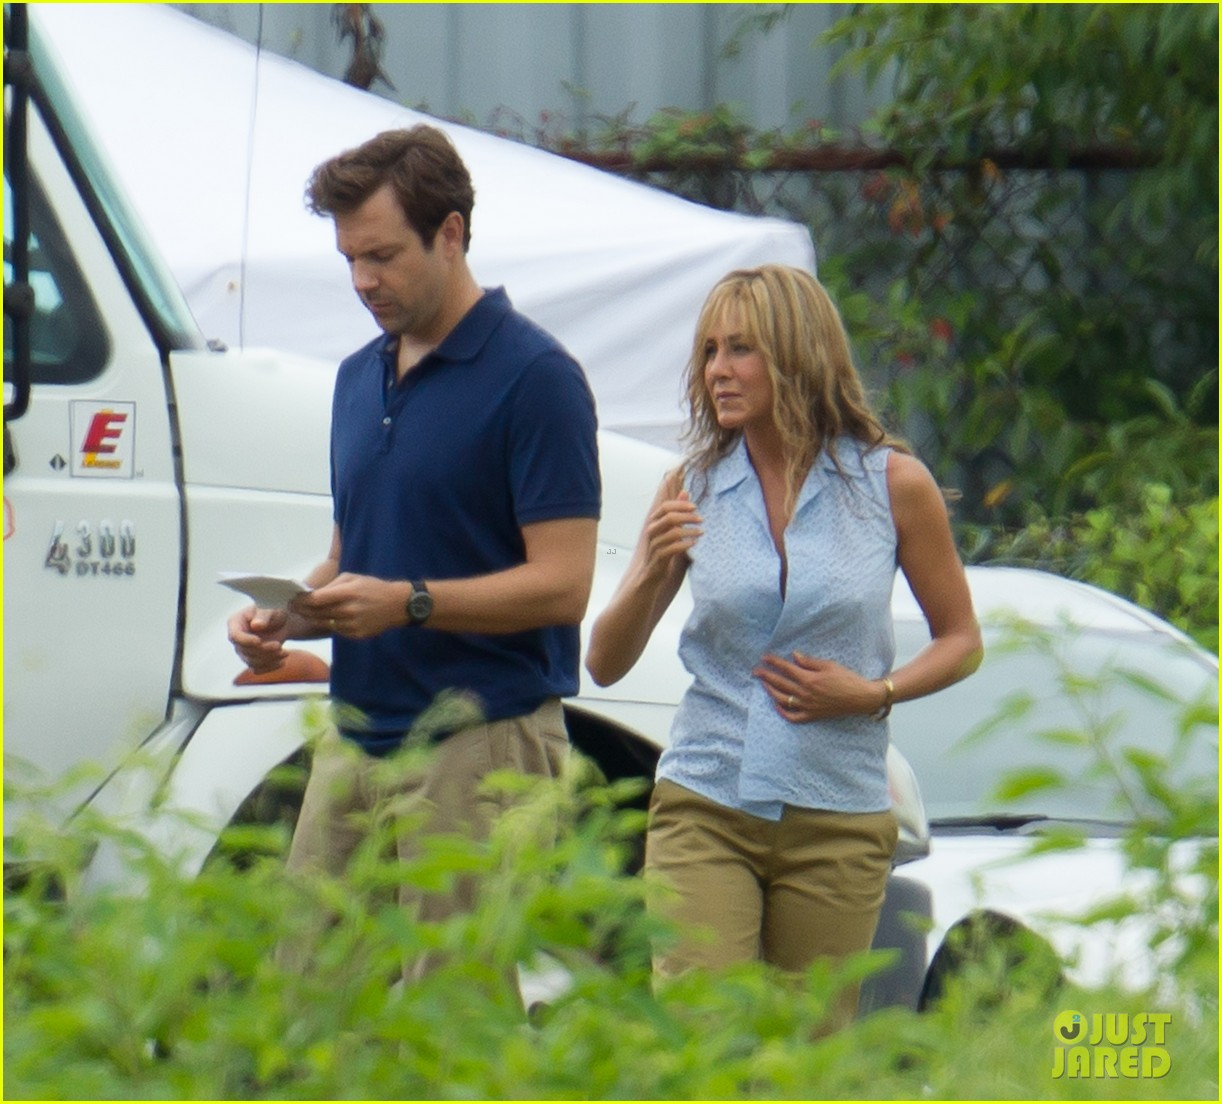 Jennifer Aniston Flashes Bra on 'We're The Millers' Set